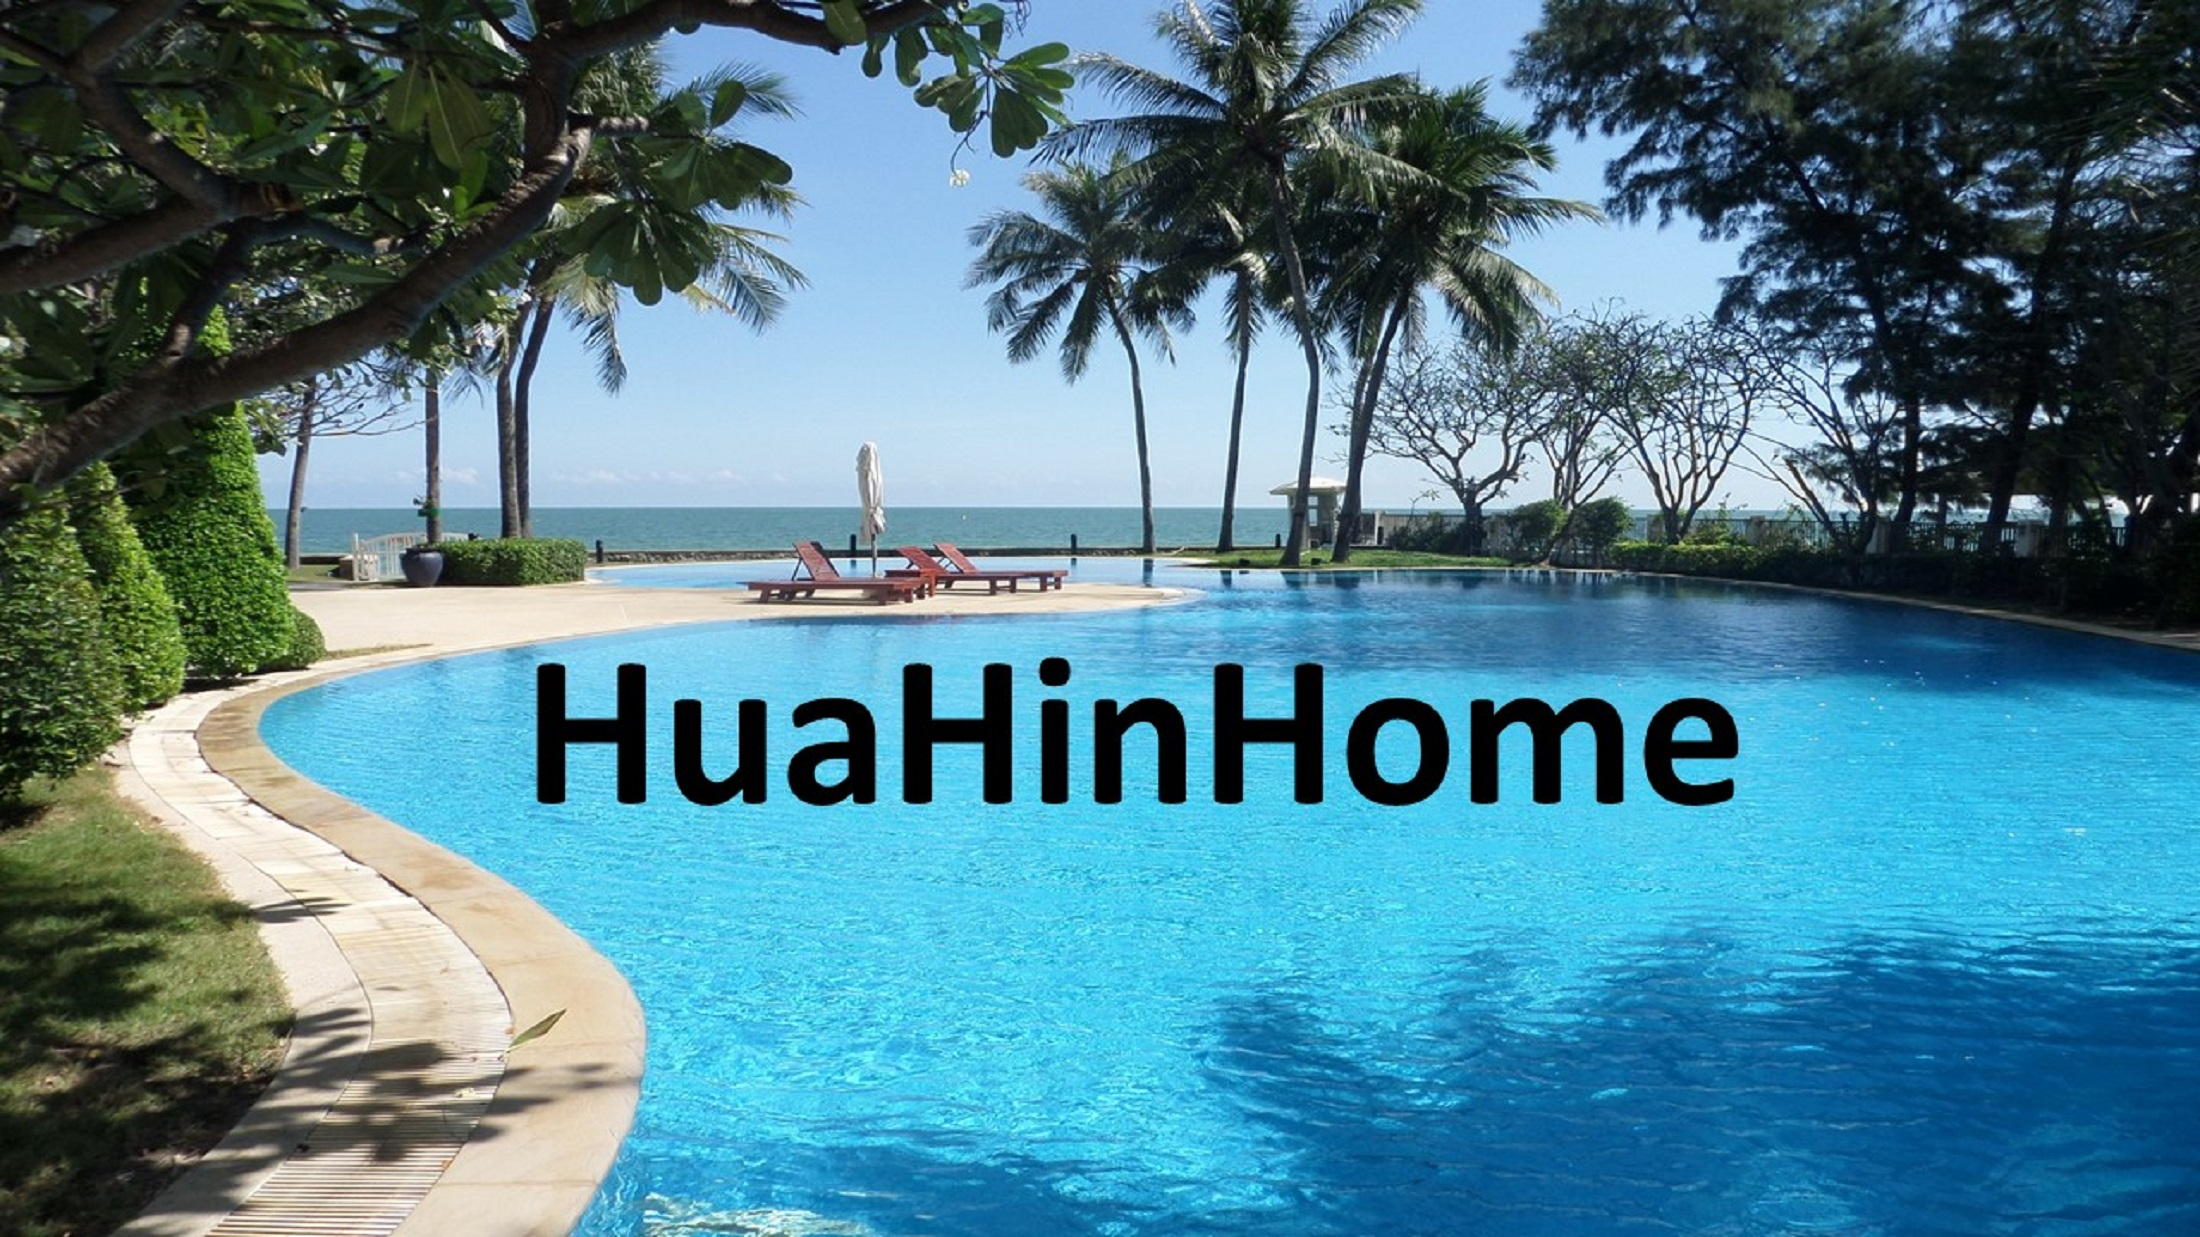 Huahinhome | Huahinhome   3 bedroom houses. Price 2000-2499 baht